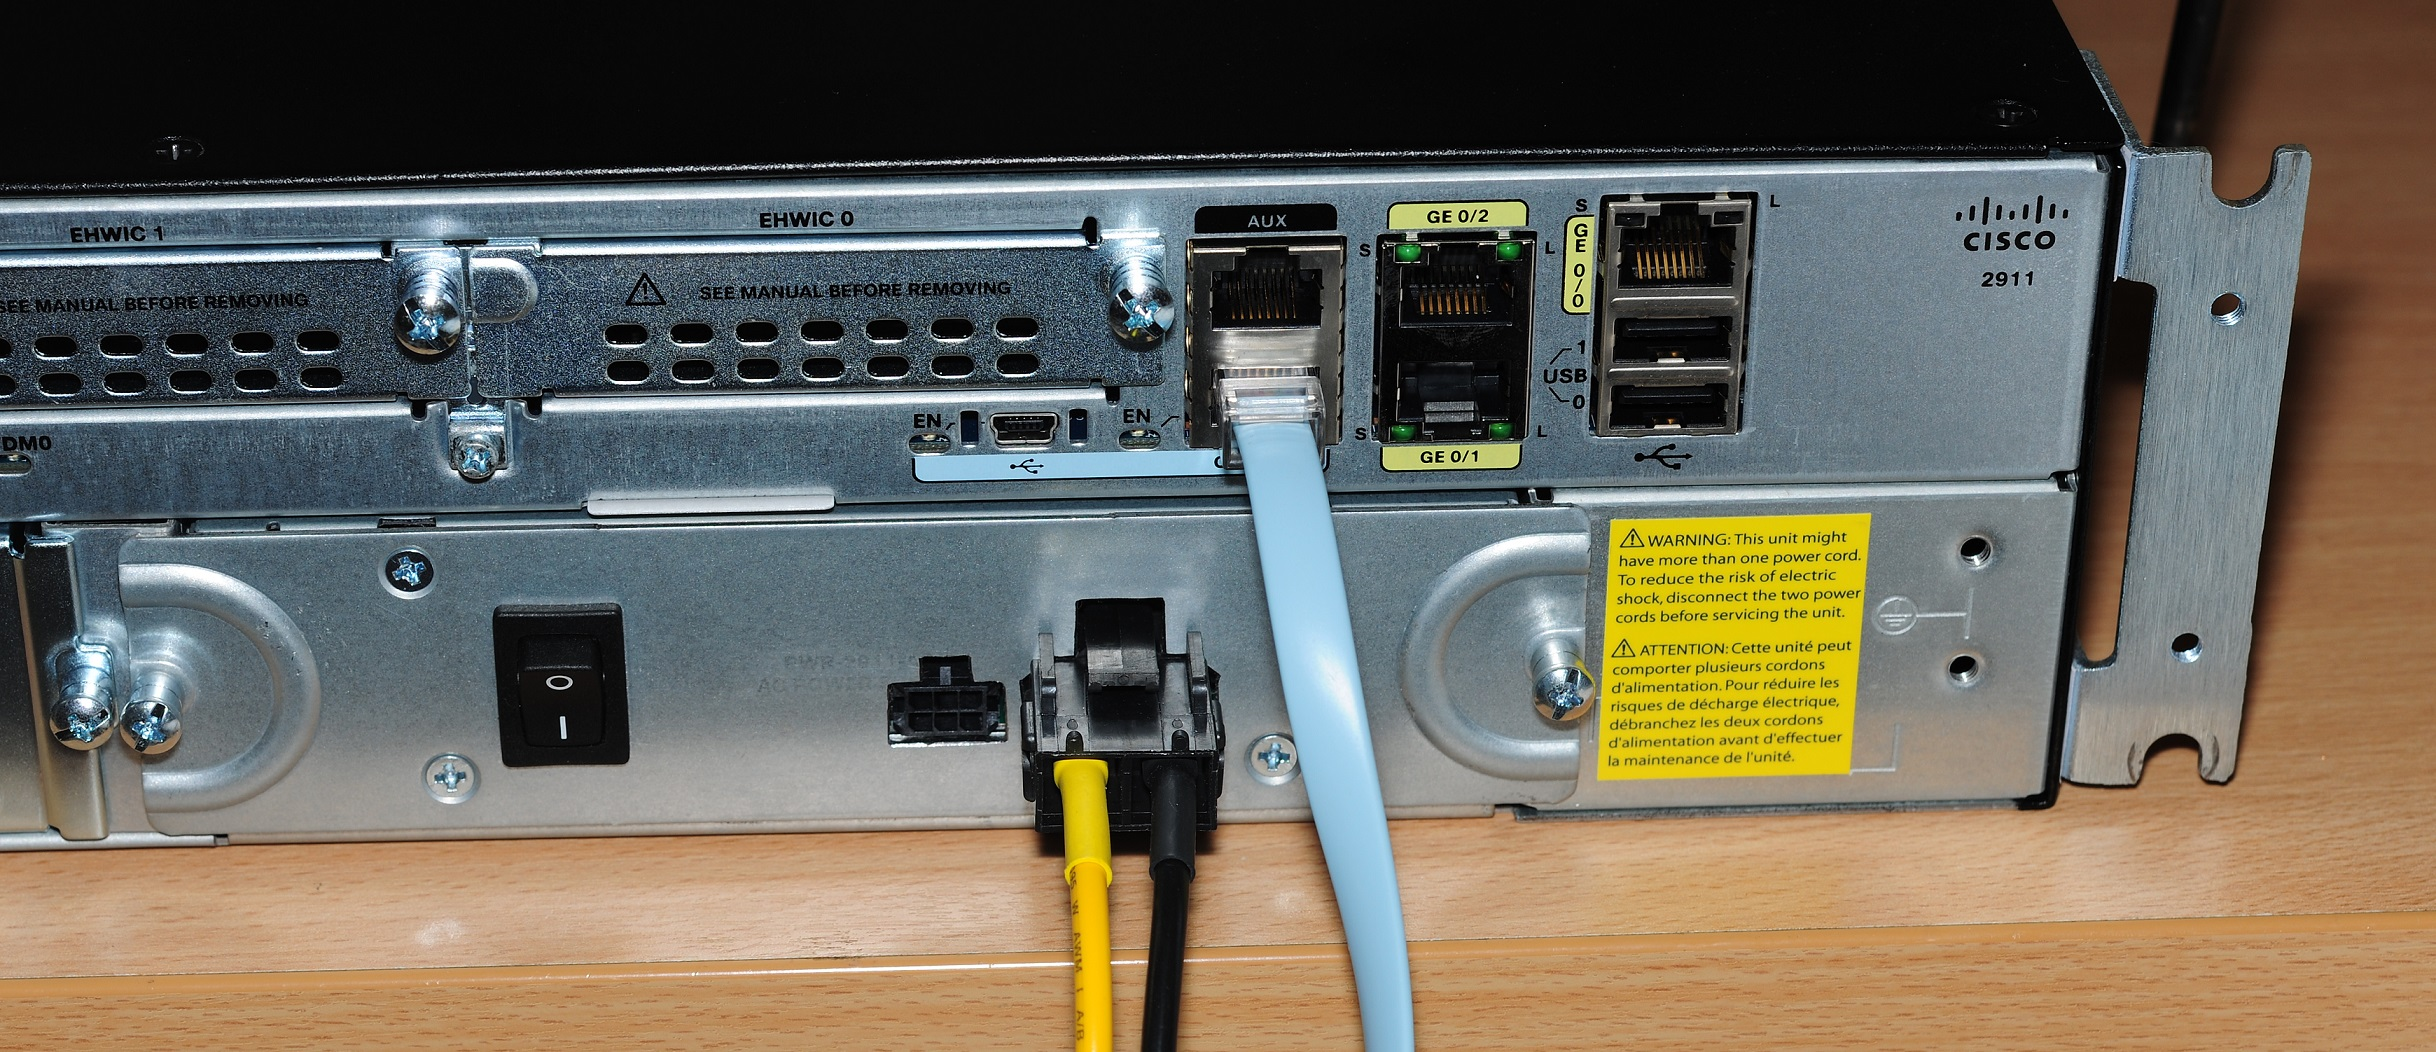 Silencing a Cisco 2911 router for home use   Matt's Tech Pages